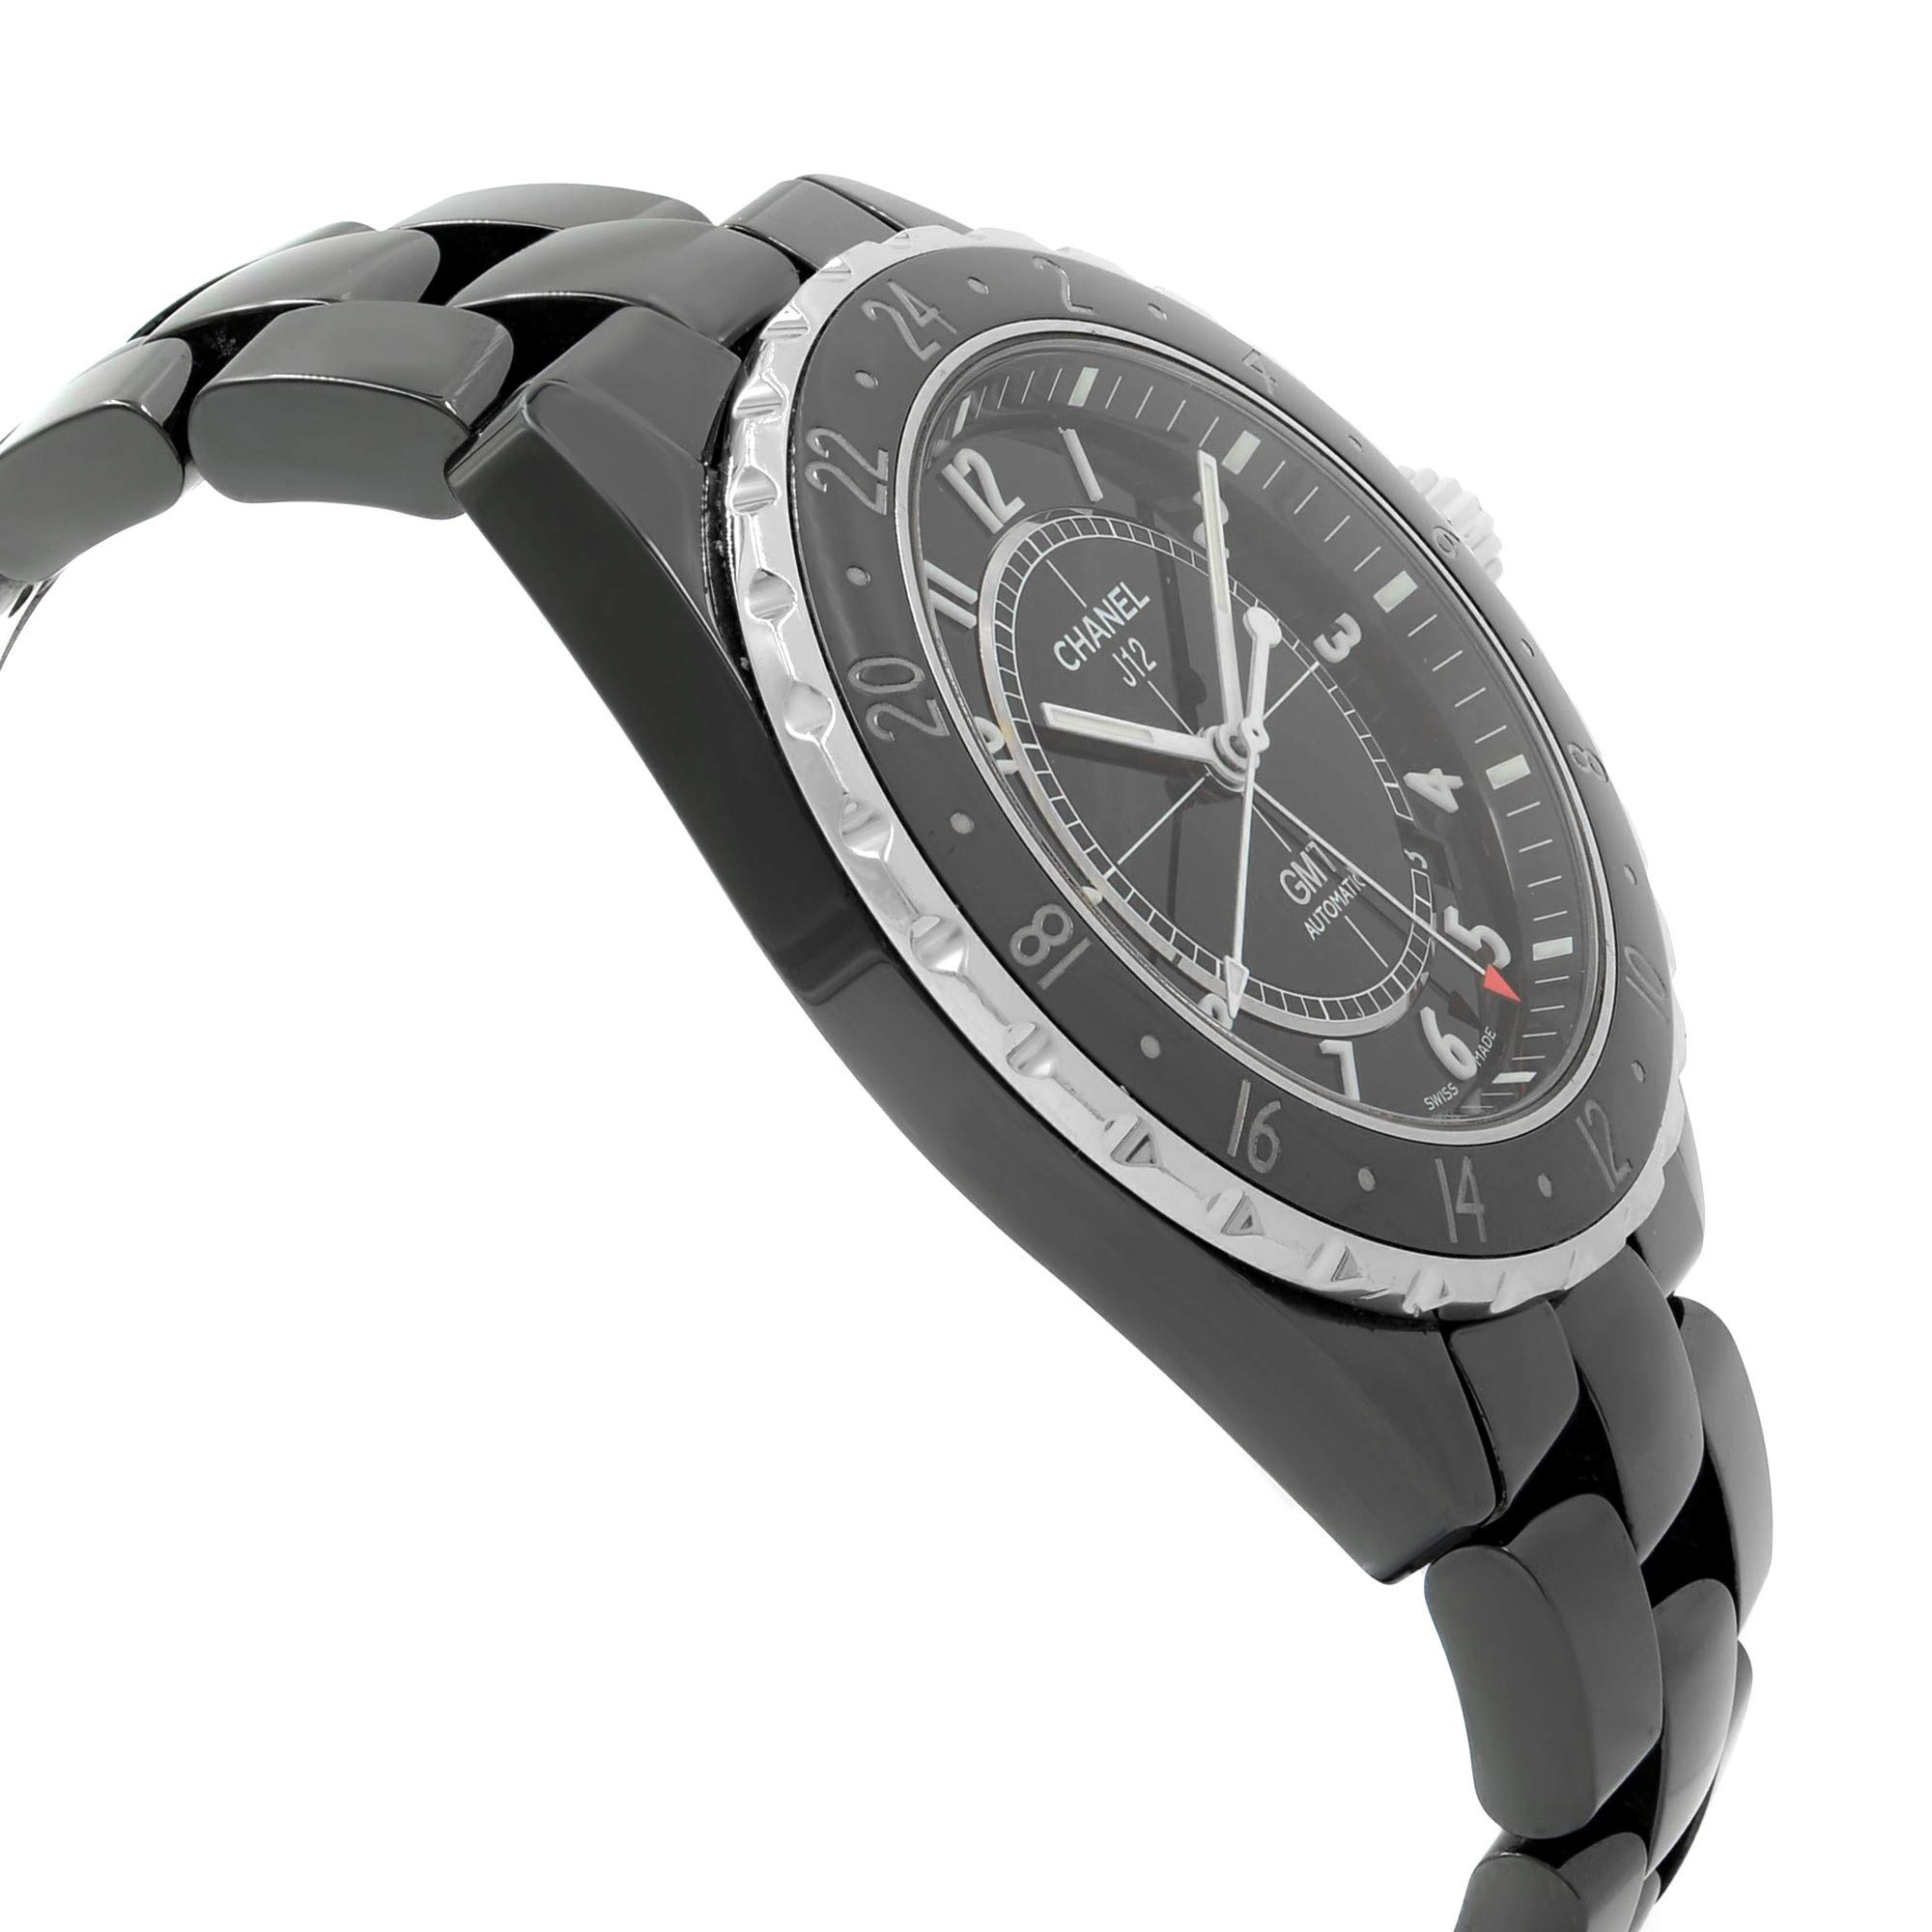 Chanel J12 Automatic-self-Wind Male Watch H2012 (Certified Pre-Owned) by CHANEL (Image #4)